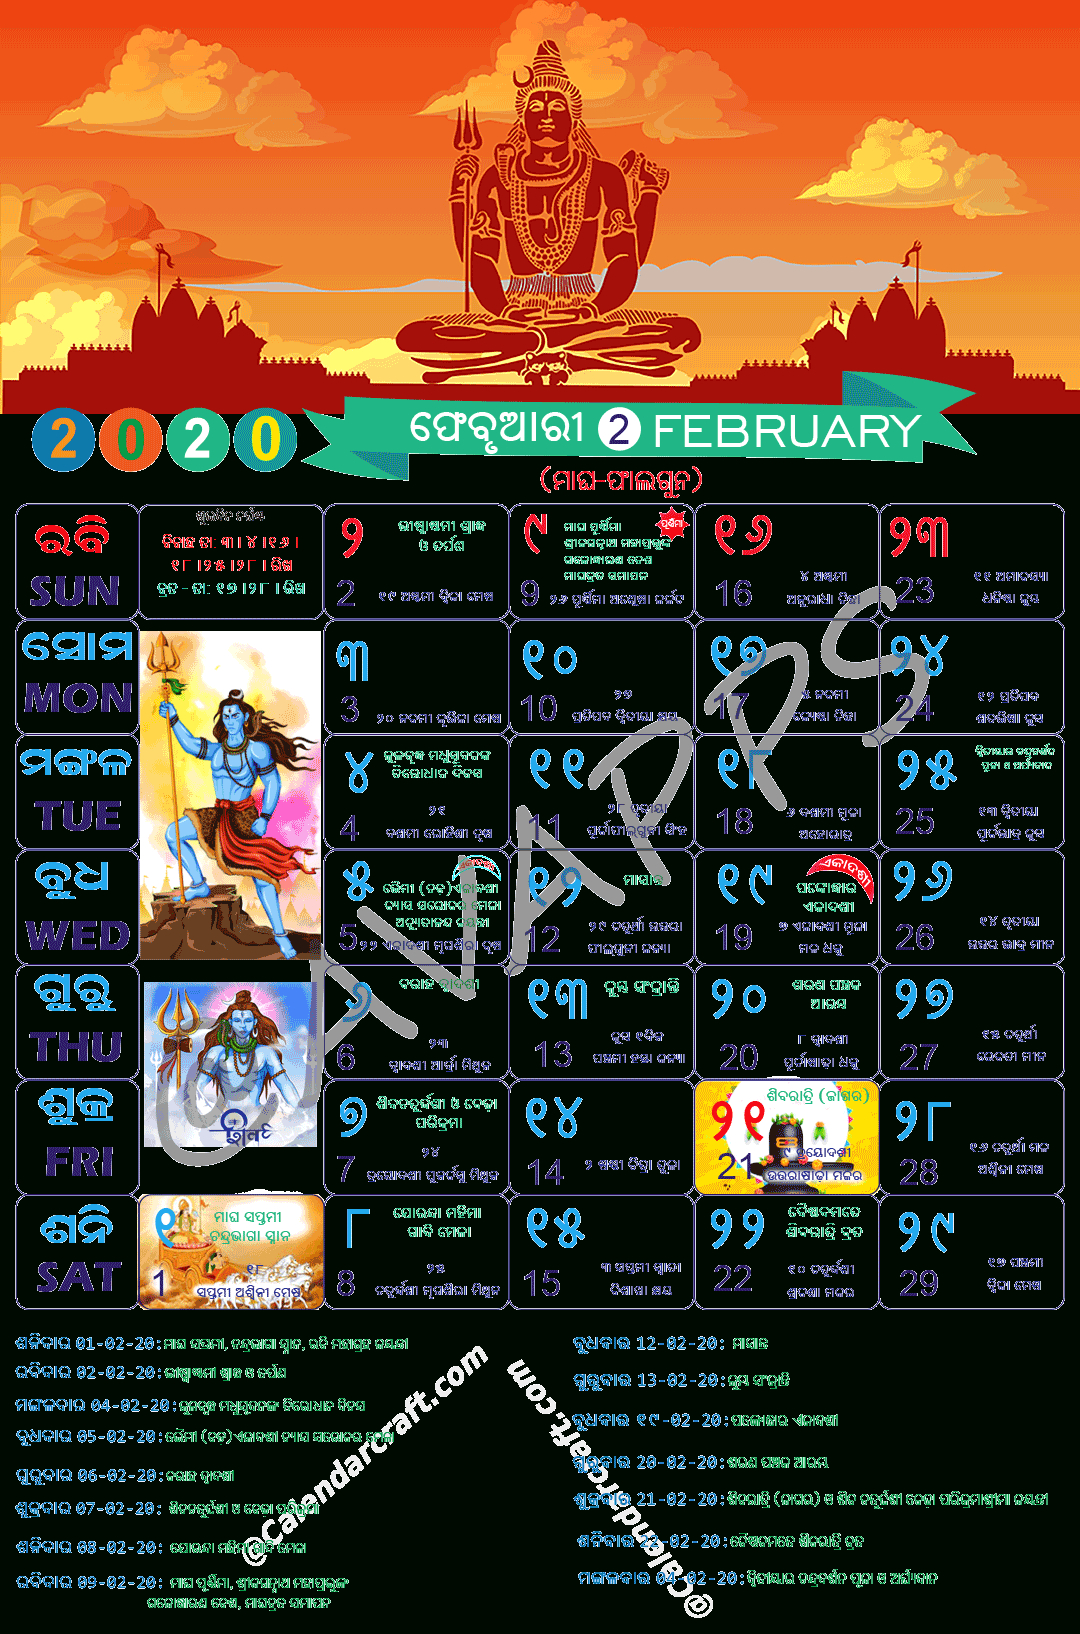 Odia Calendar February 2020 | Mobile Apps intended for Odia Calendar February 2020